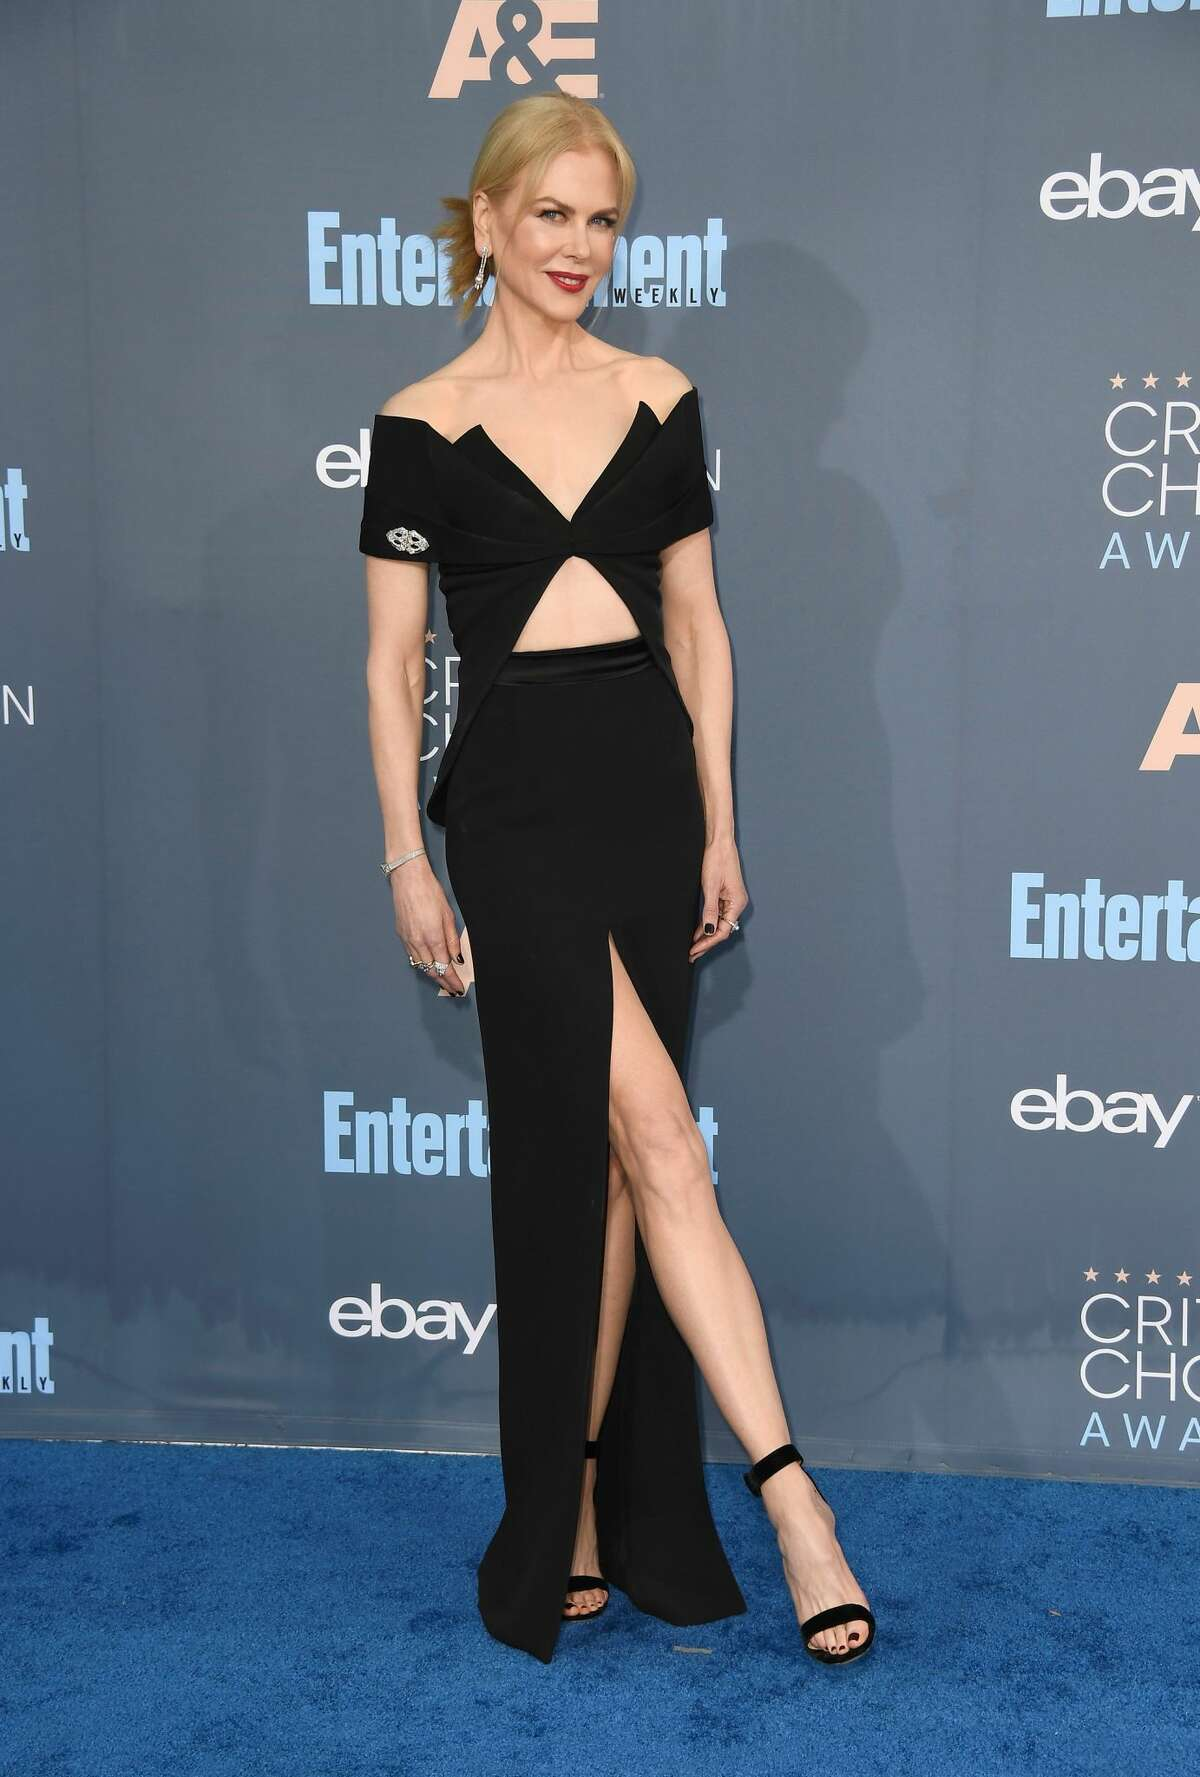 Best: This gown kind of makes Nicole Kidman looks like Bat Woman.